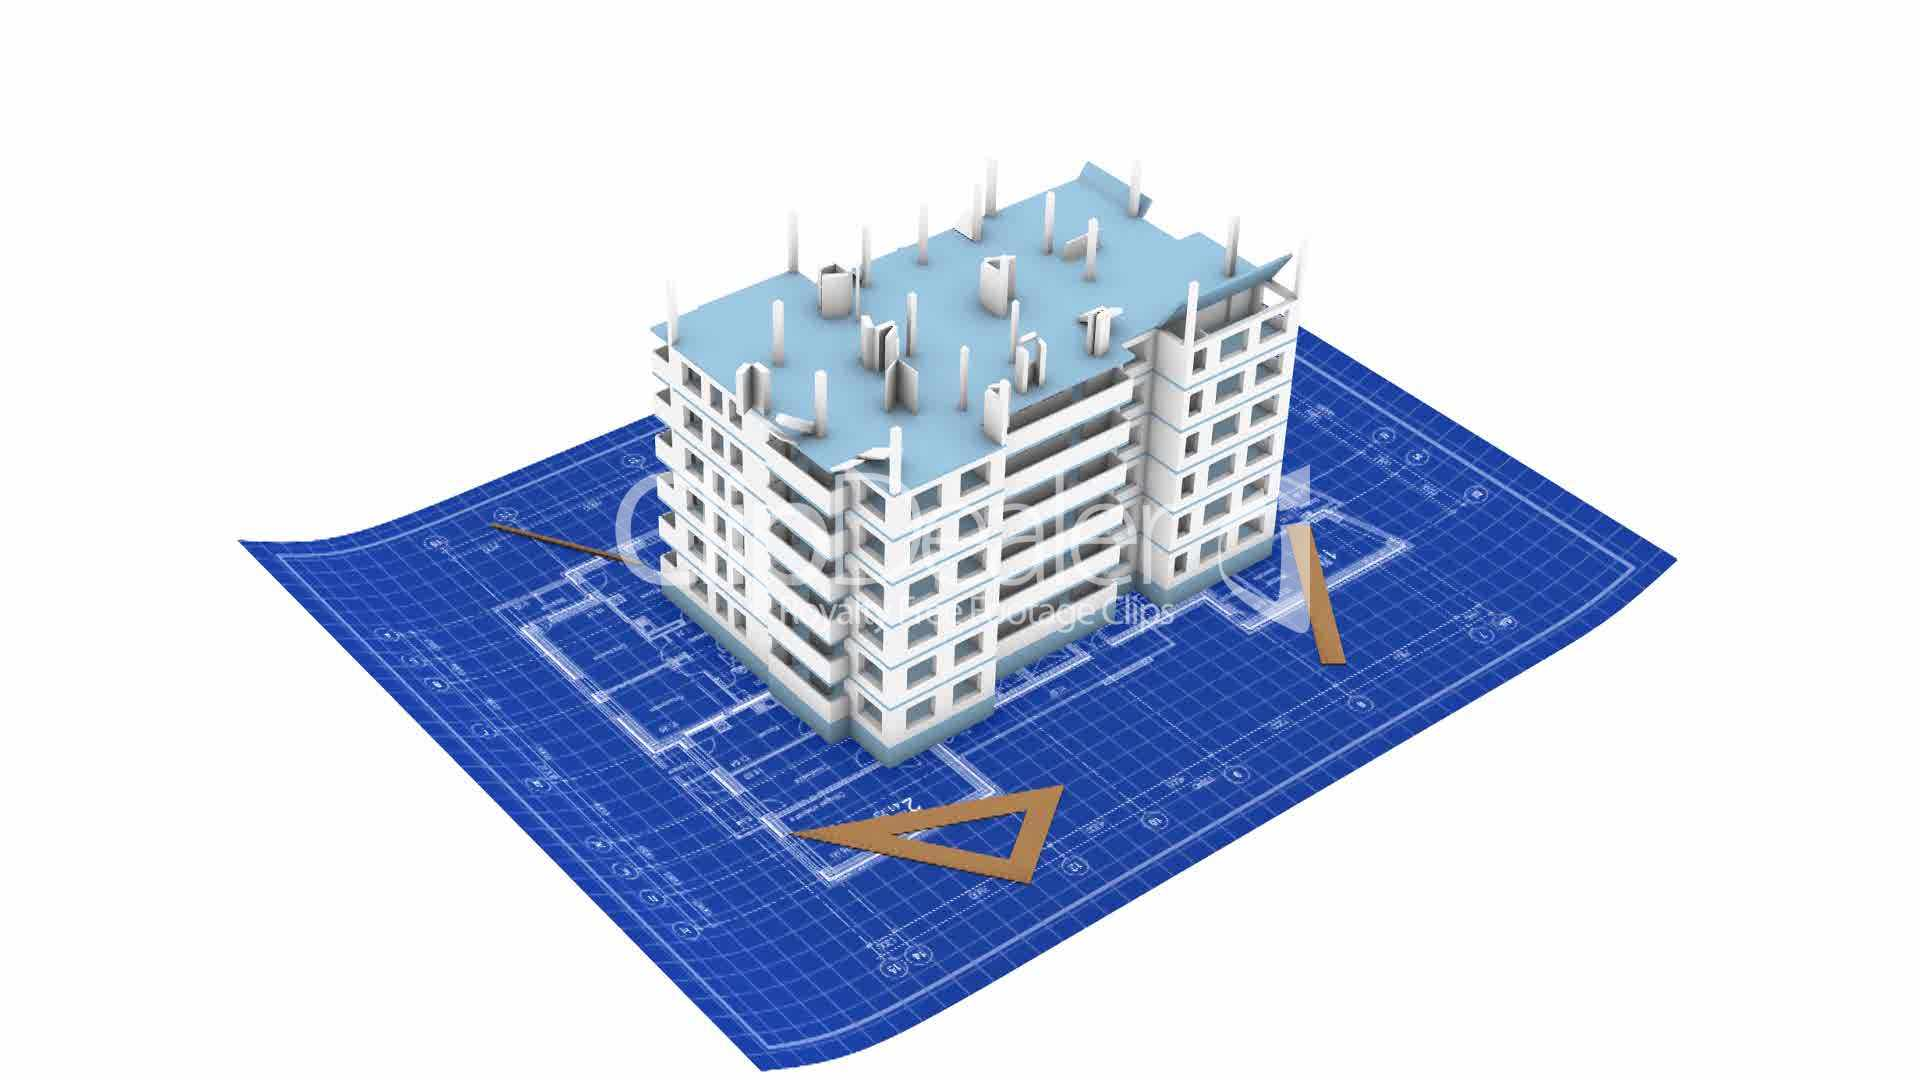 House being built on a blueprint paper vdeos de archivo y clips clips malvernweather Choice Image